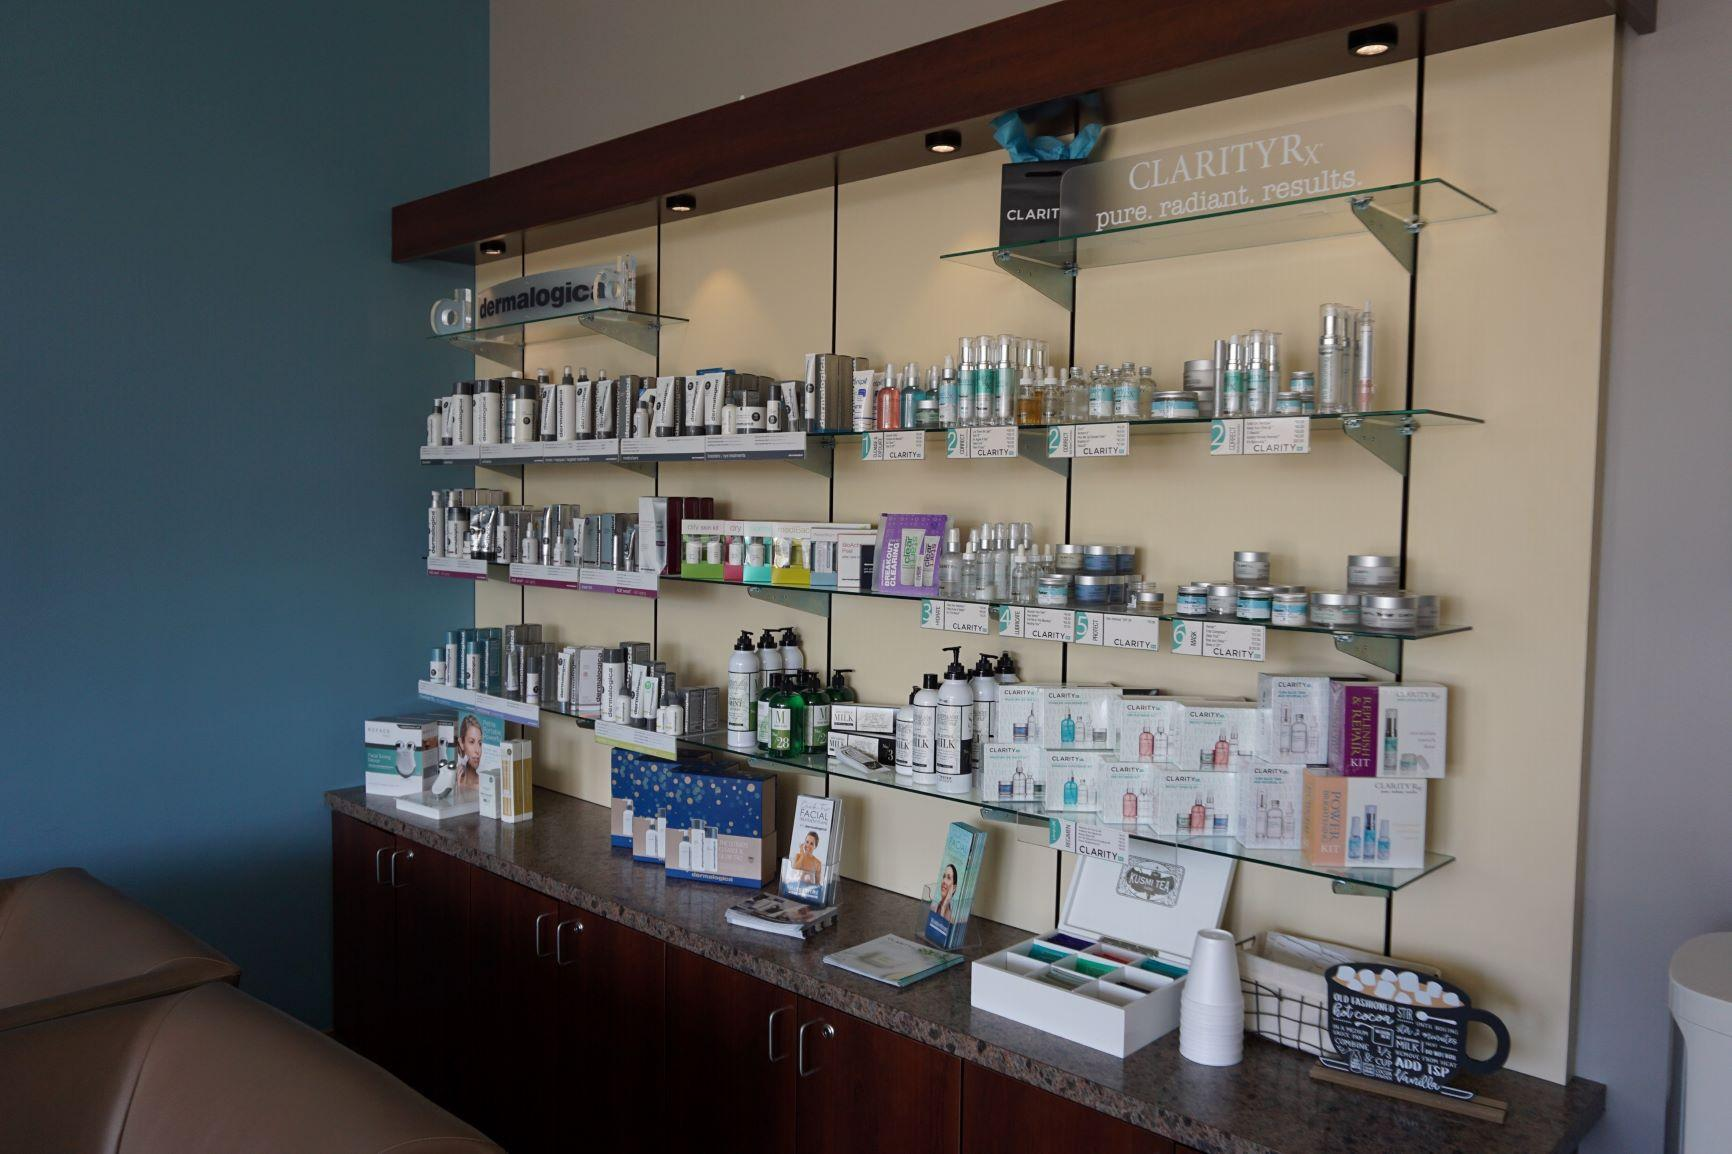 Dermalogica & Clarity Rx Product Shelf